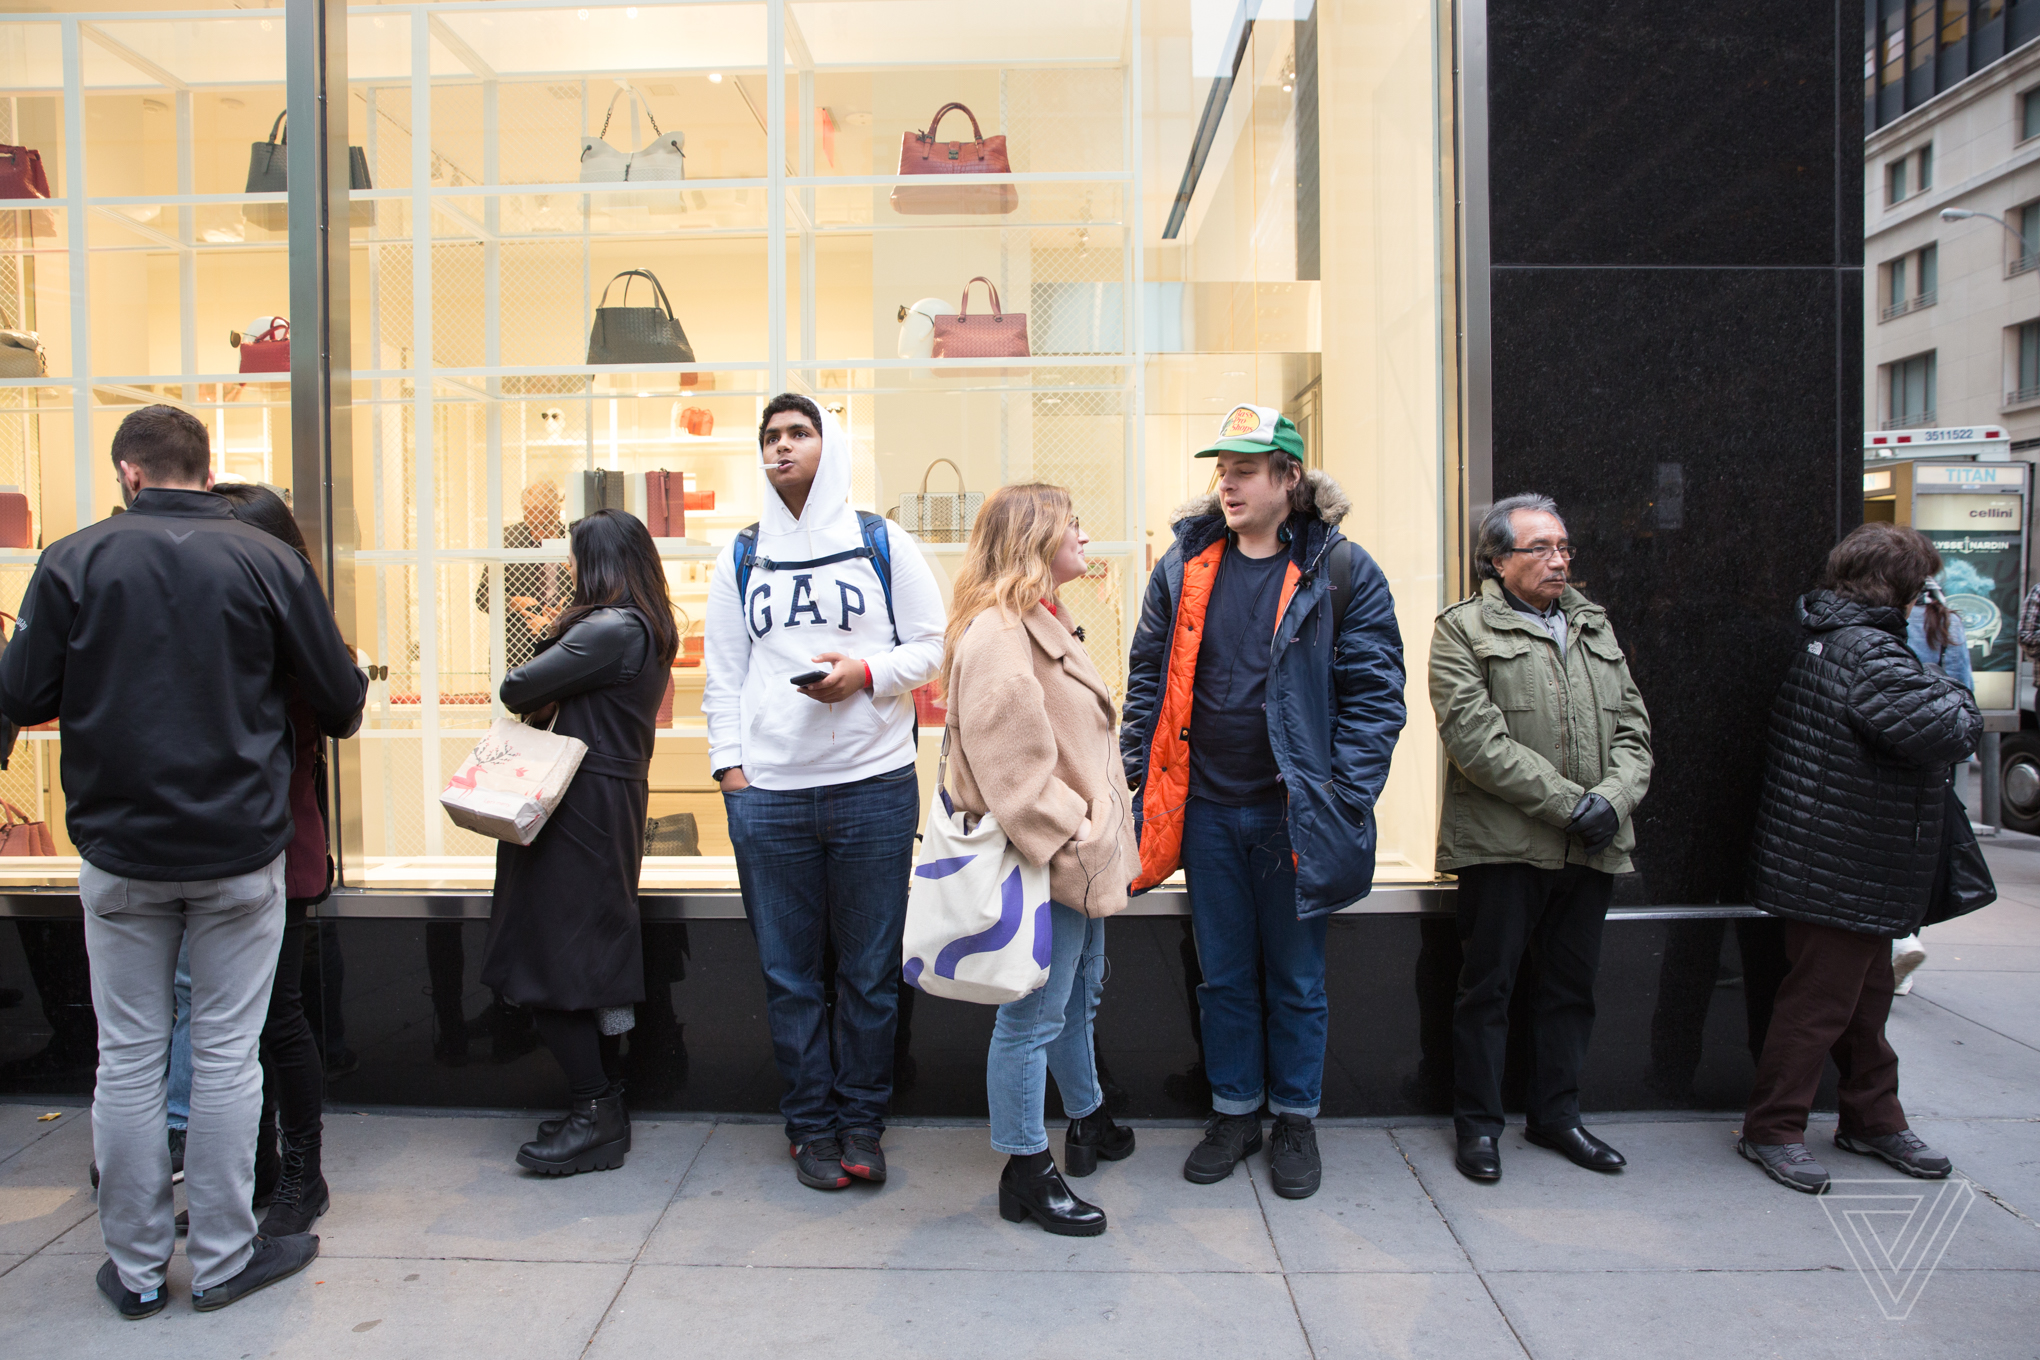 Shoppers lined up as early as 4AM to get a pair of Snapchat Spectacles at the pop-up shop on 59th Street in New York City.